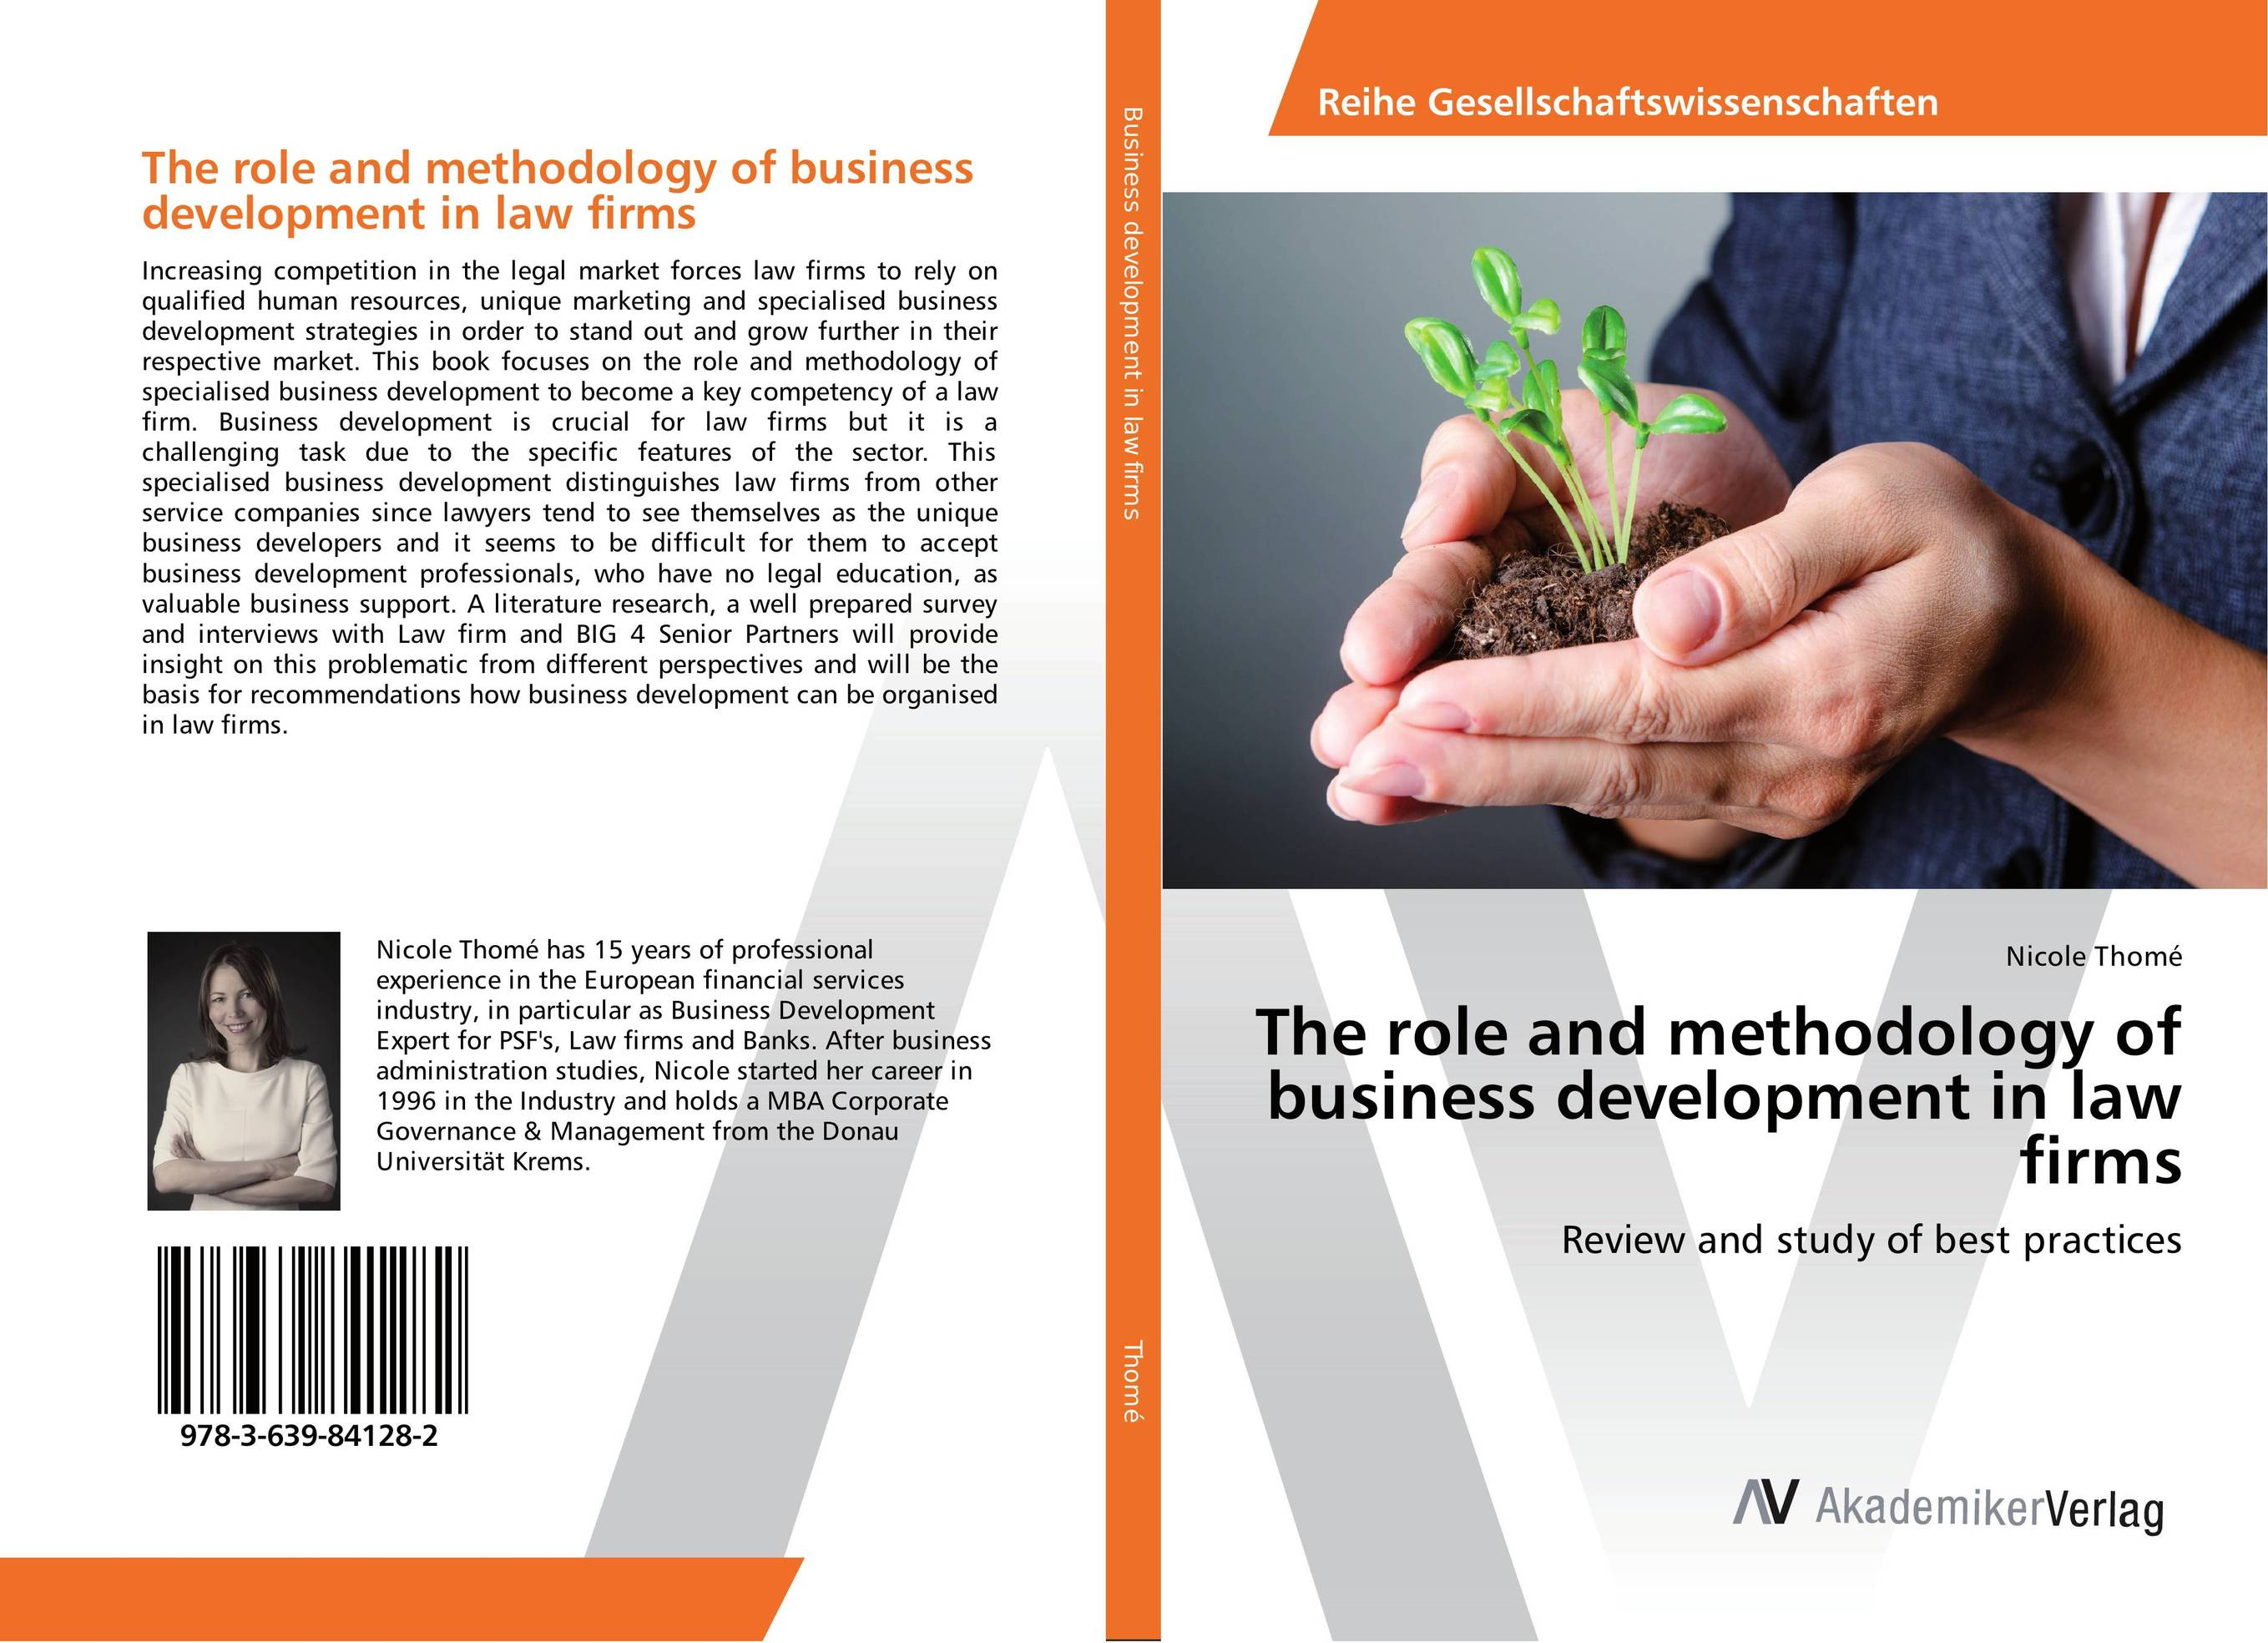 The role and methodology of business development in law firms